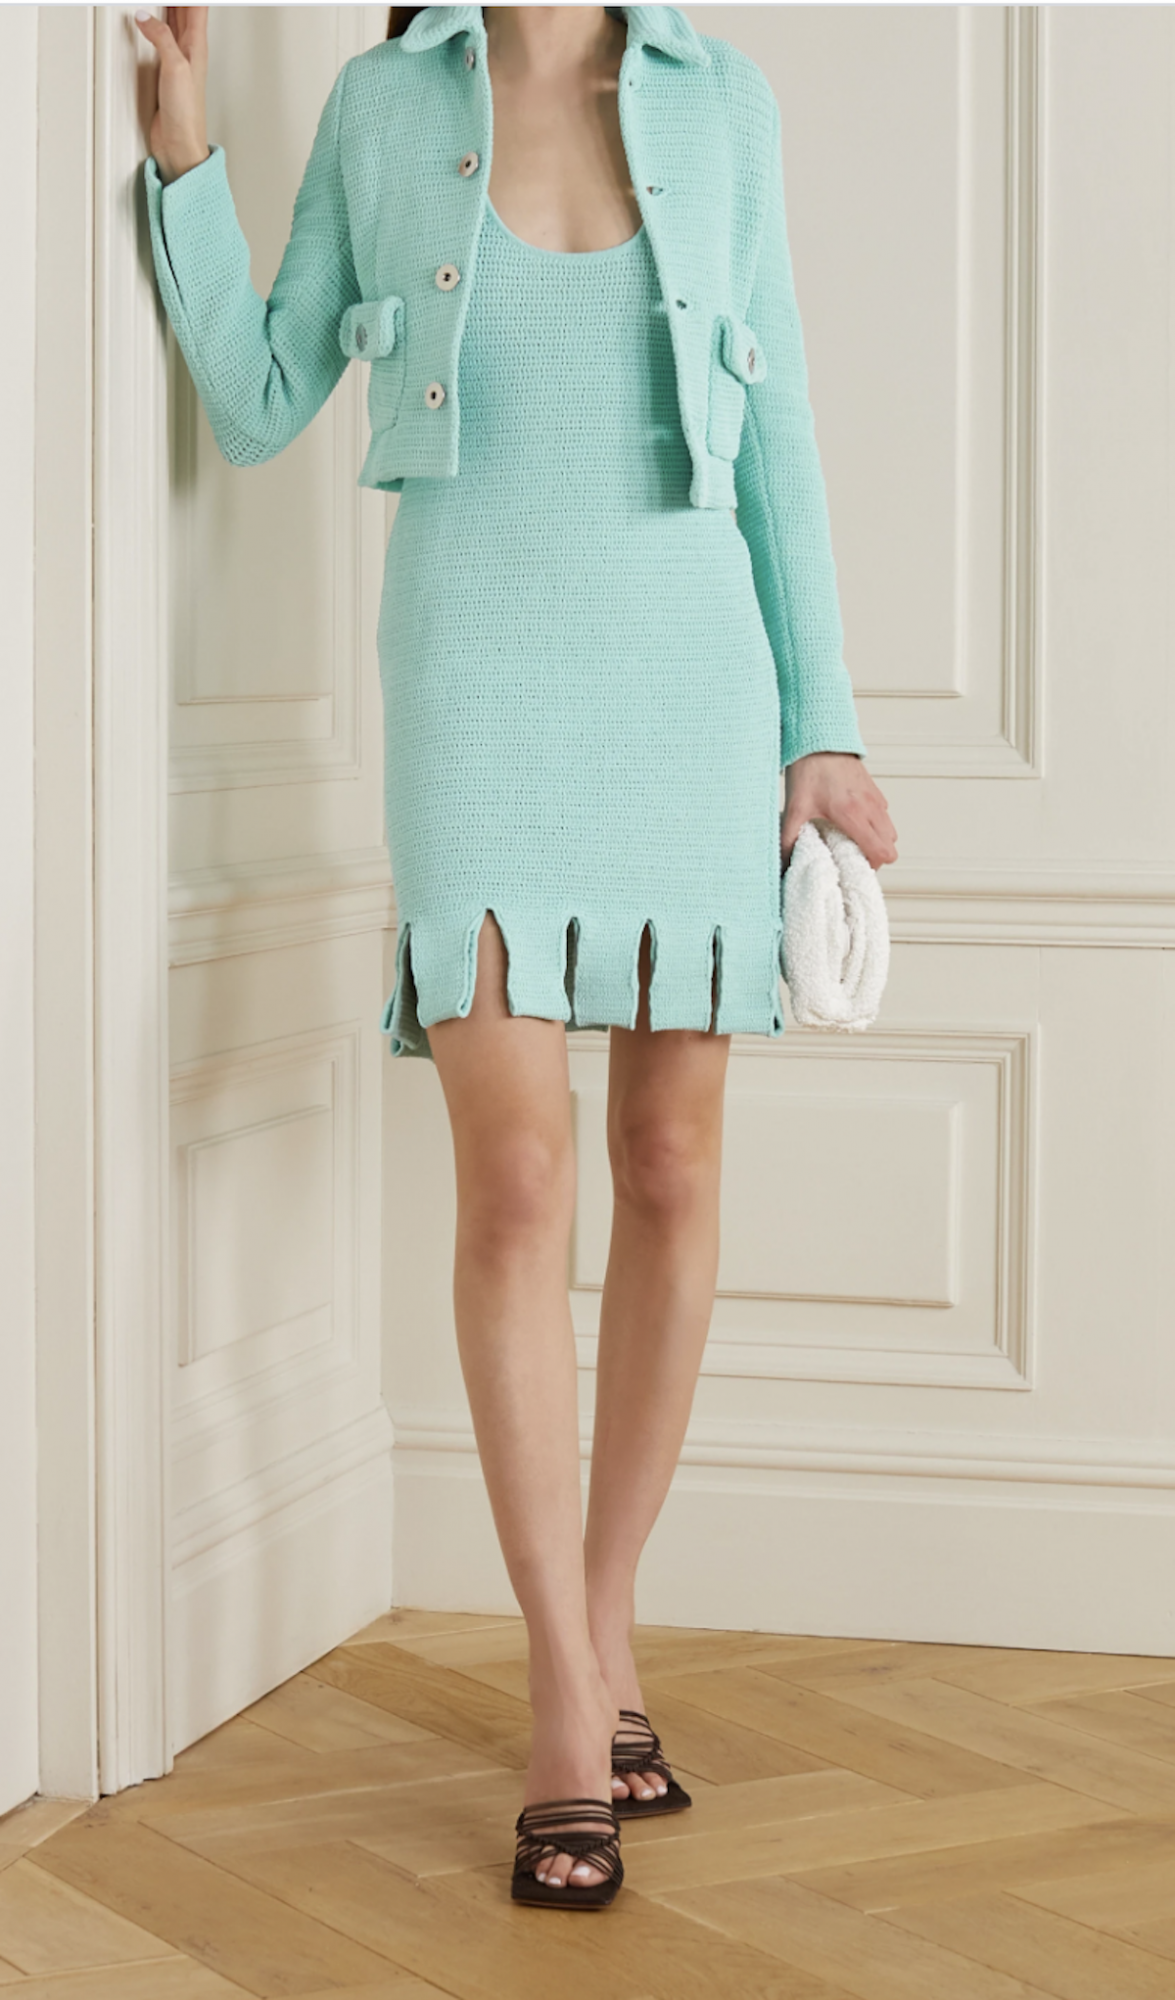 The Spring Edit: 9 Perfect Pastel Outfits For Easter Brunch